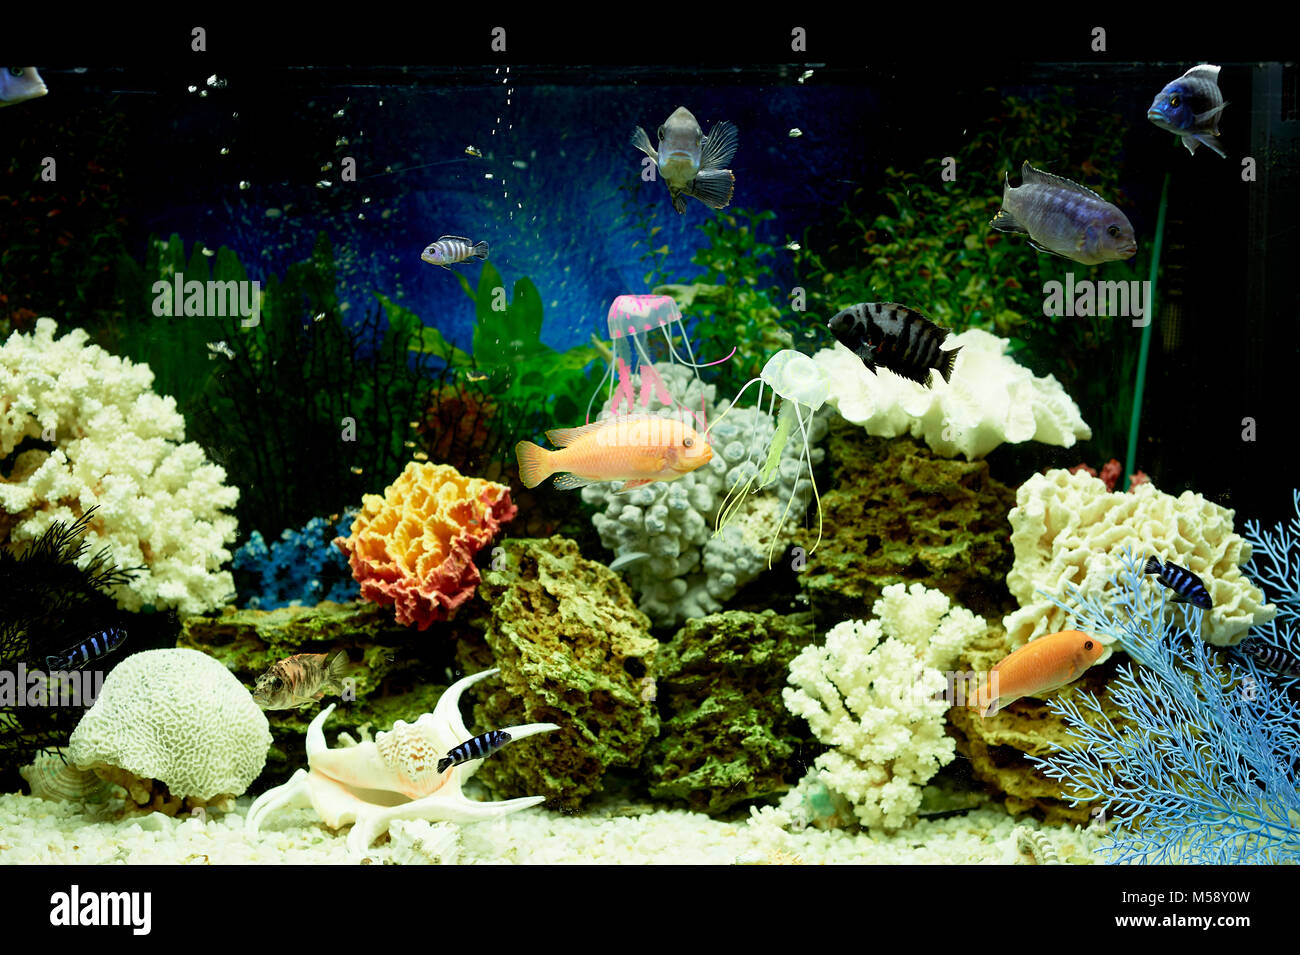 fish in the aquarium, blue water.Dreams of the sea. Relax at home - Stock Image